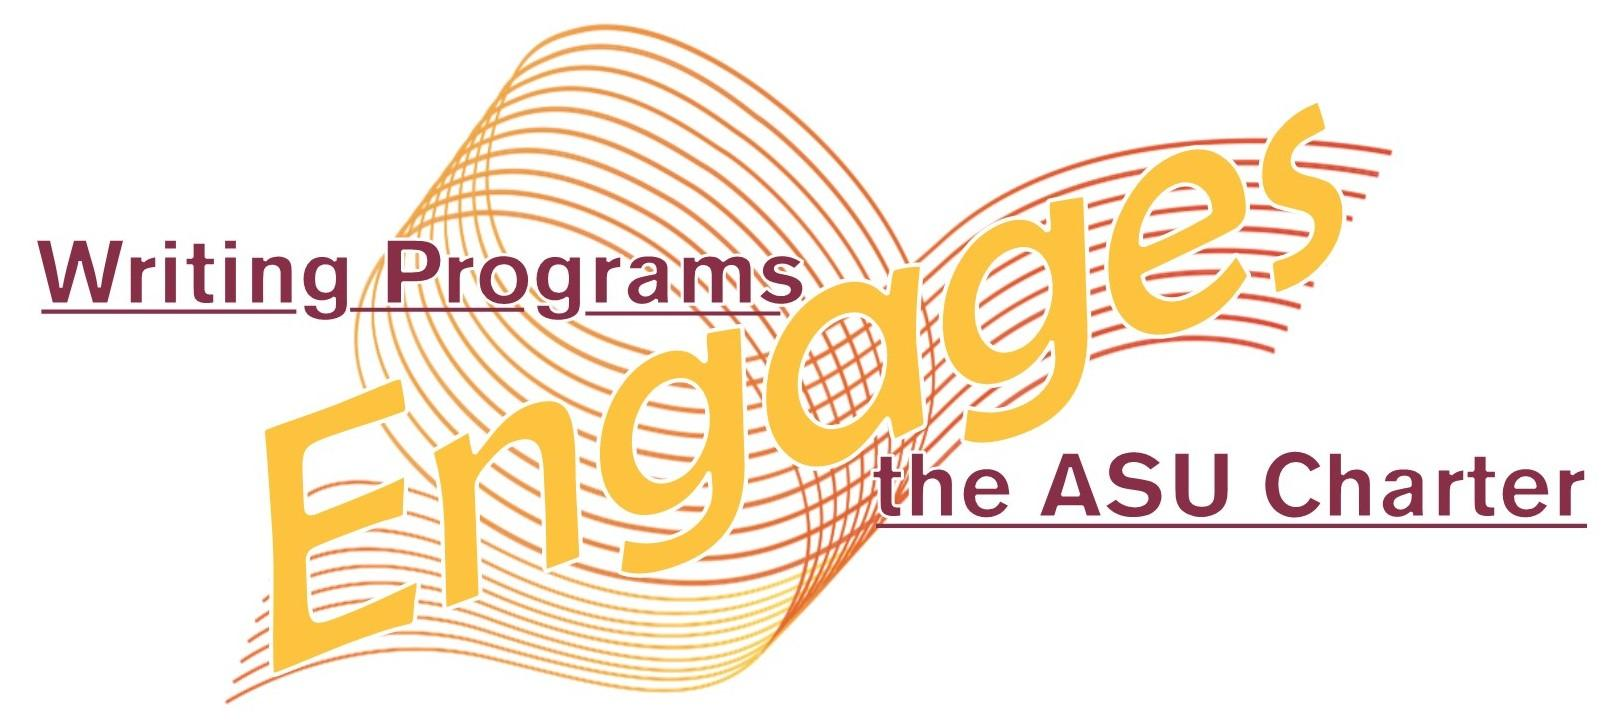 ASU Writing Programs engages the University Charter